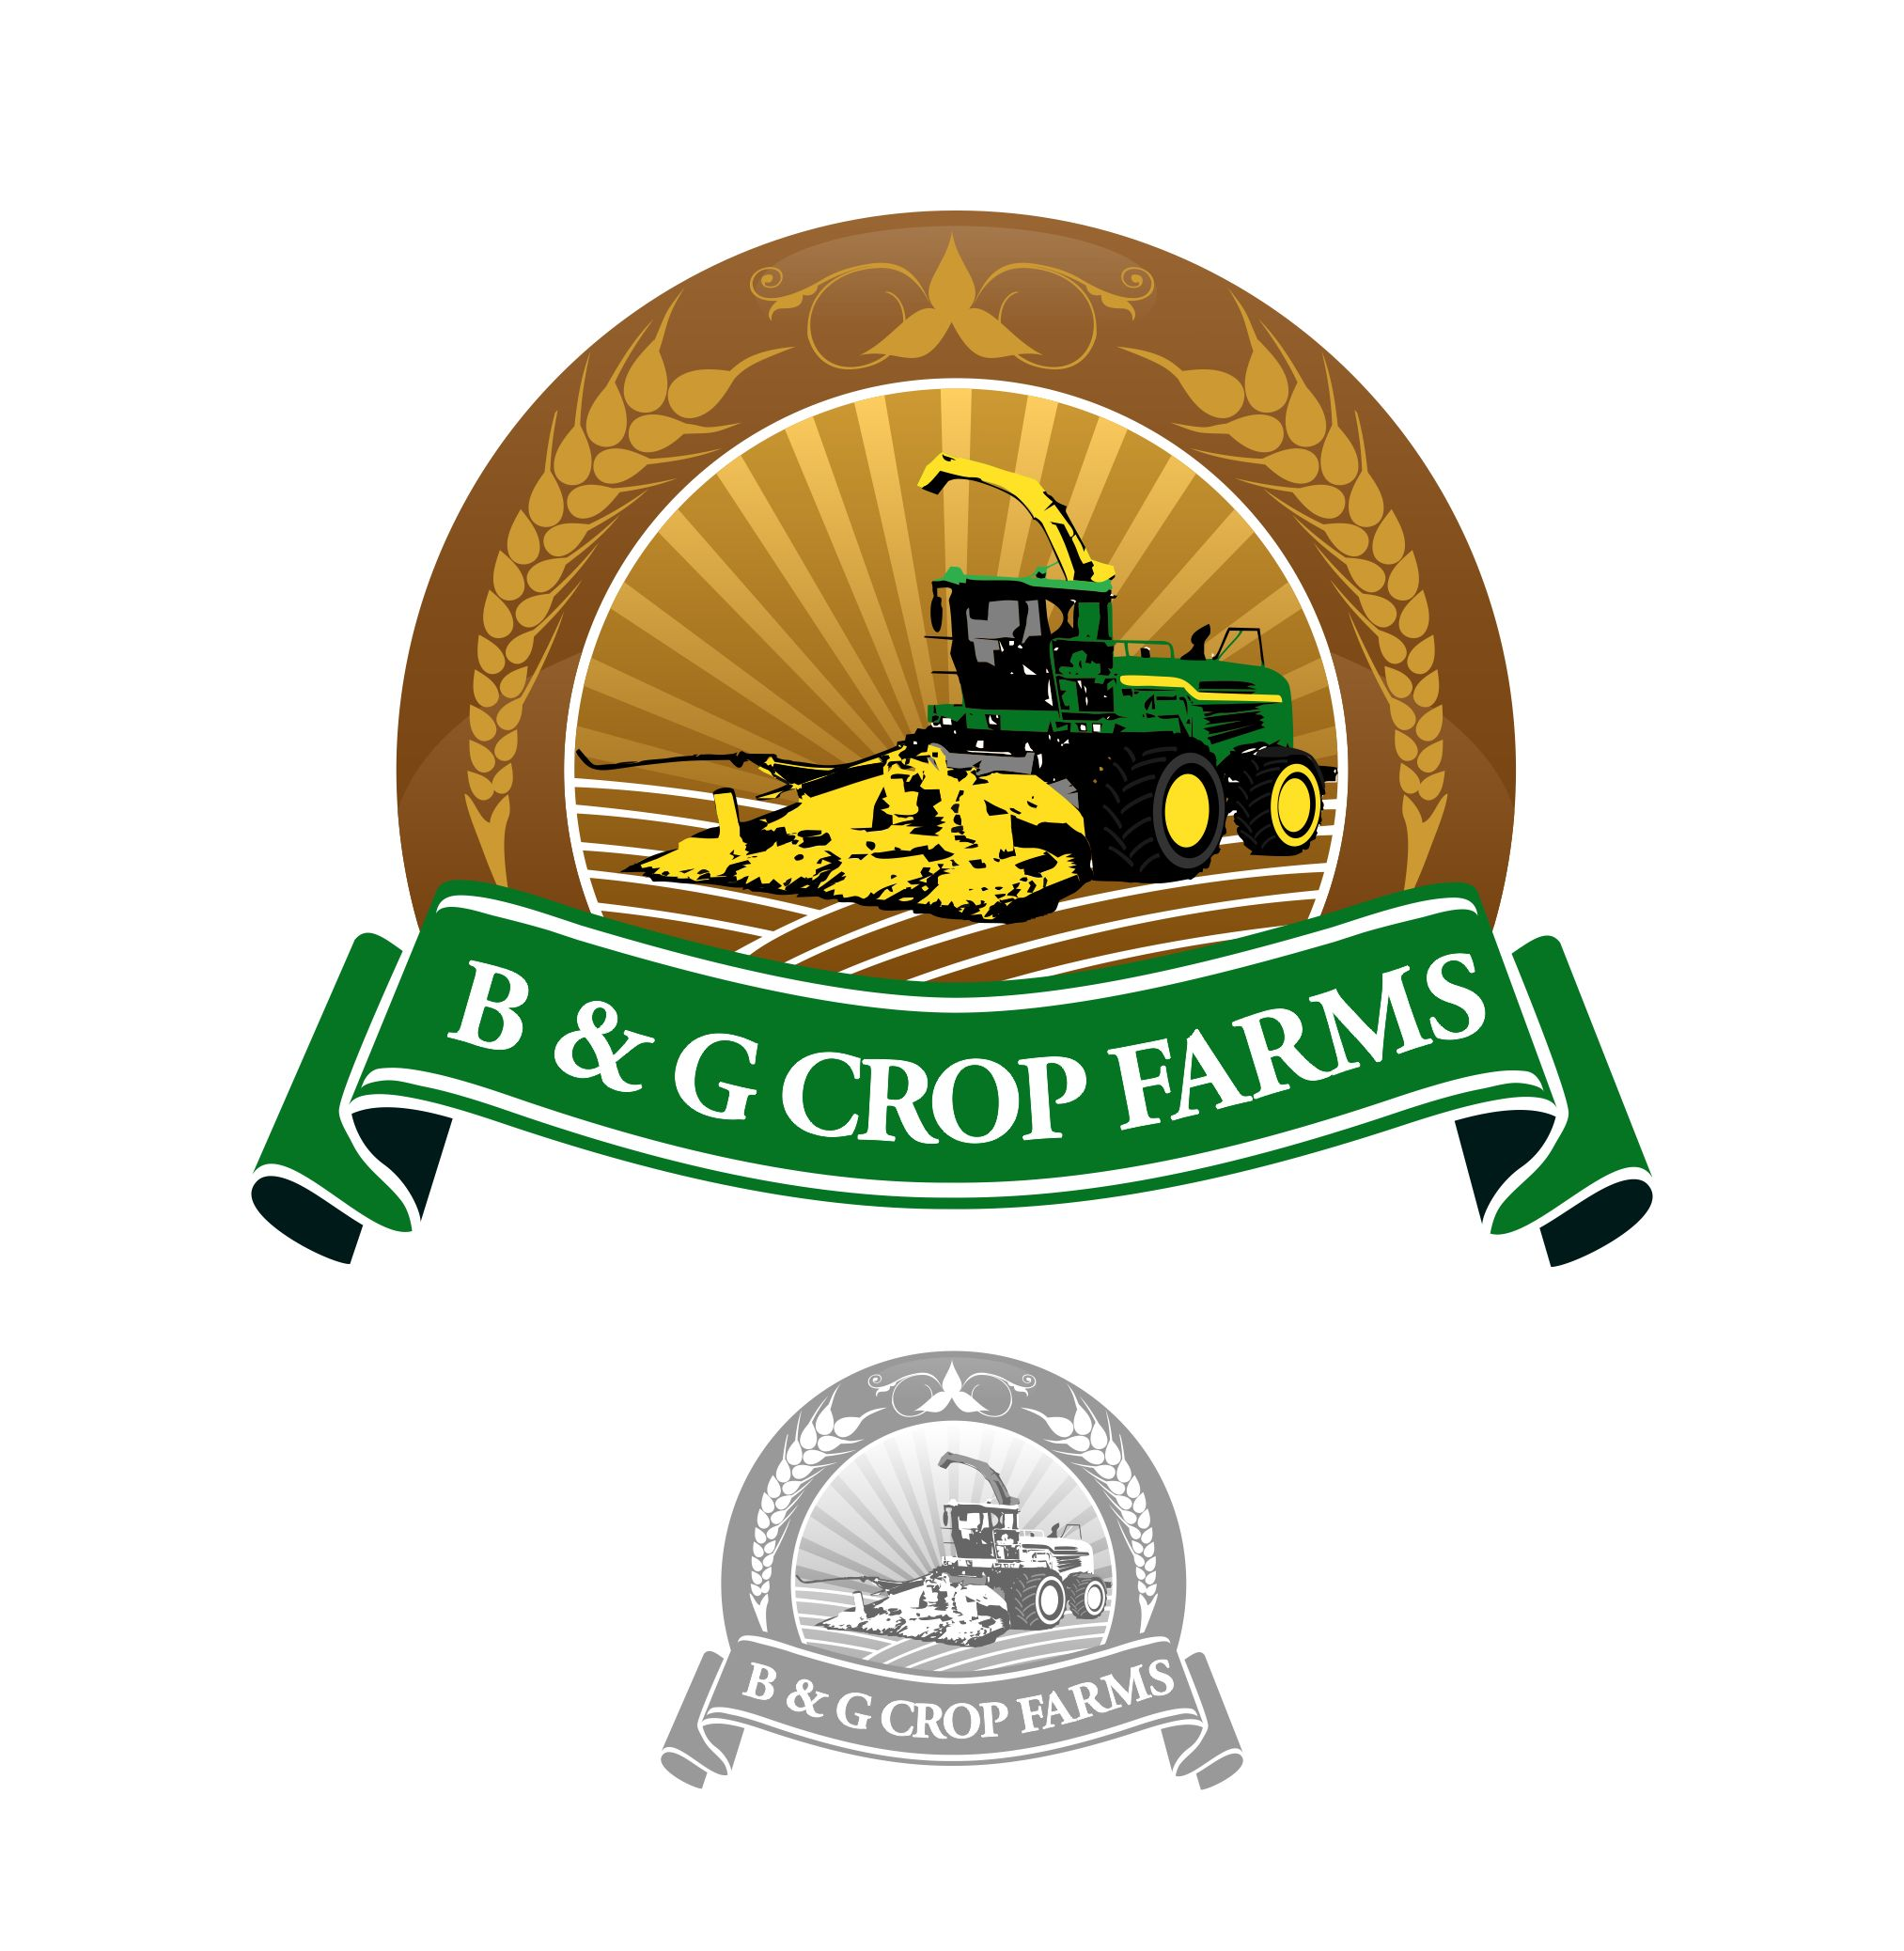 Logo Design by joca - Entry No. 53 in the Logo Design Contest Artistic Logo Design for B & G Crop Farms.